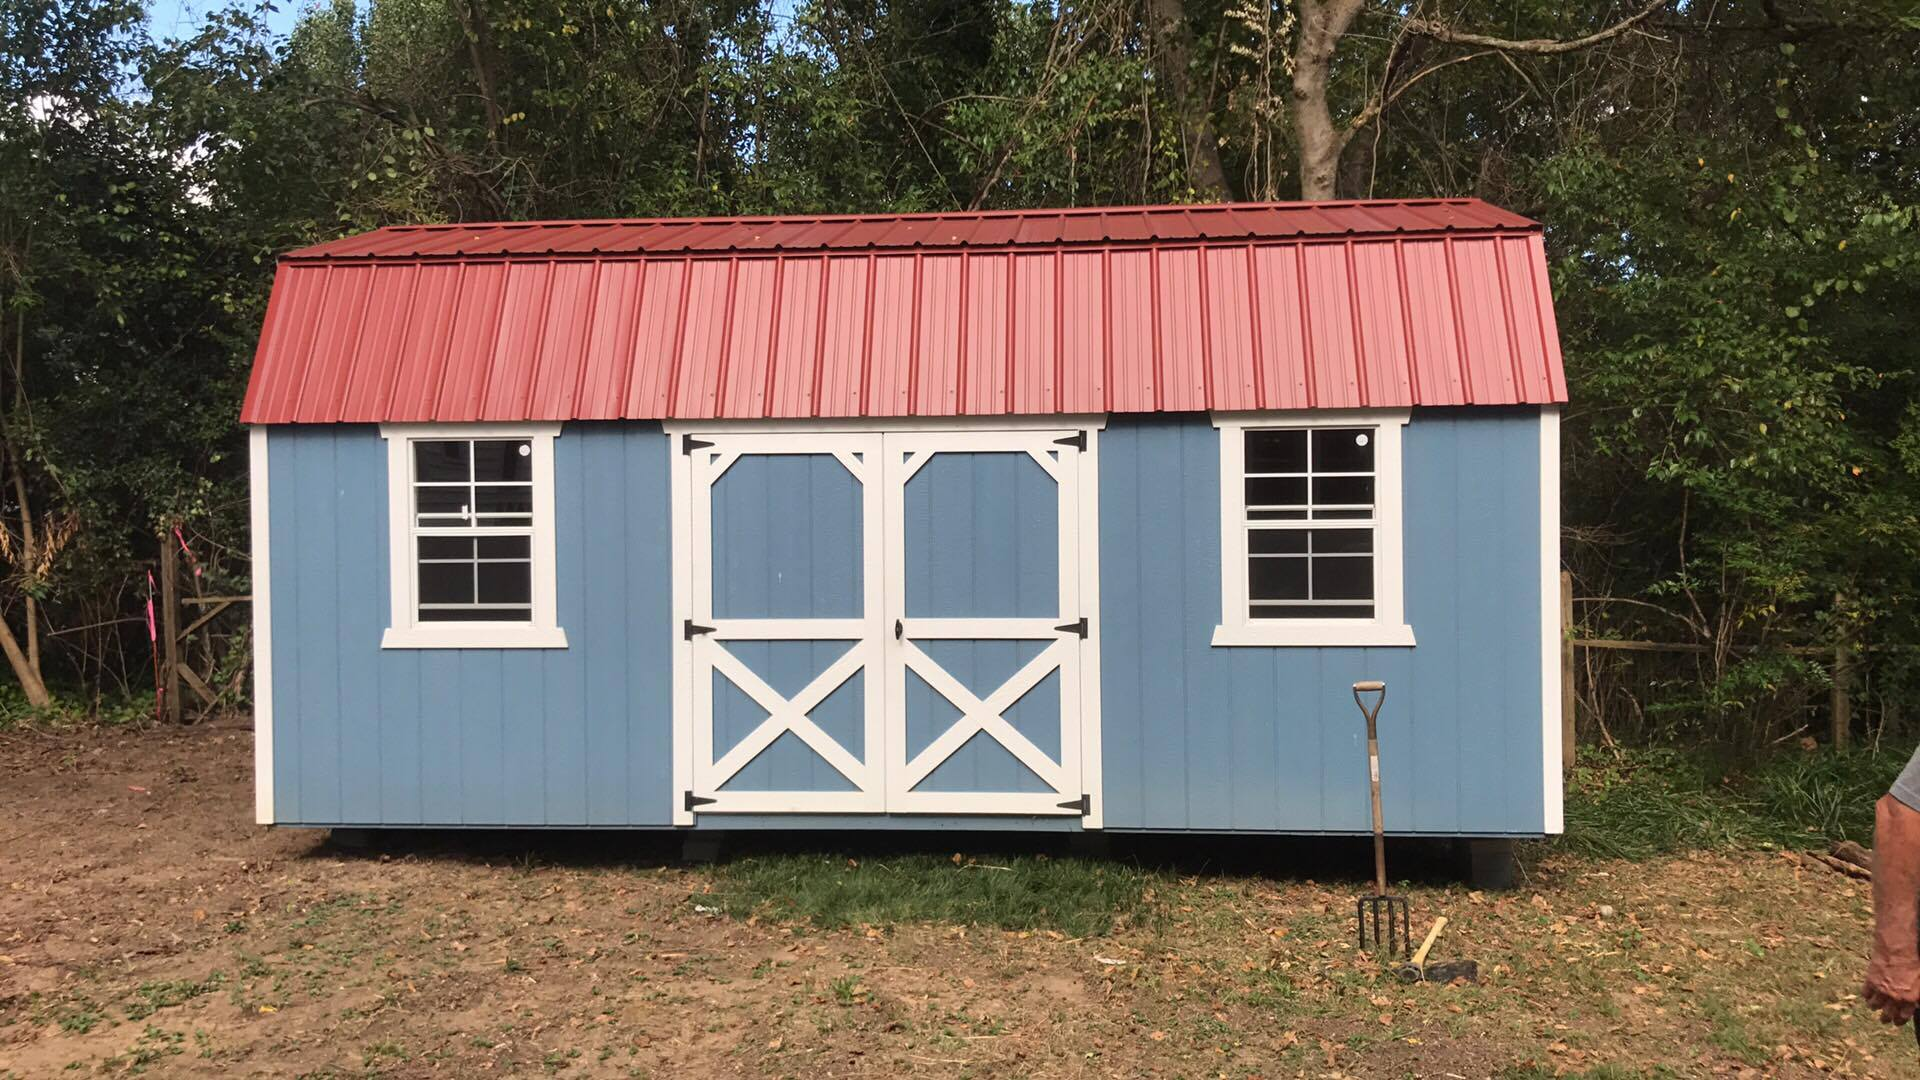 214-painted-lofted-barn-with-red-roof.jpg